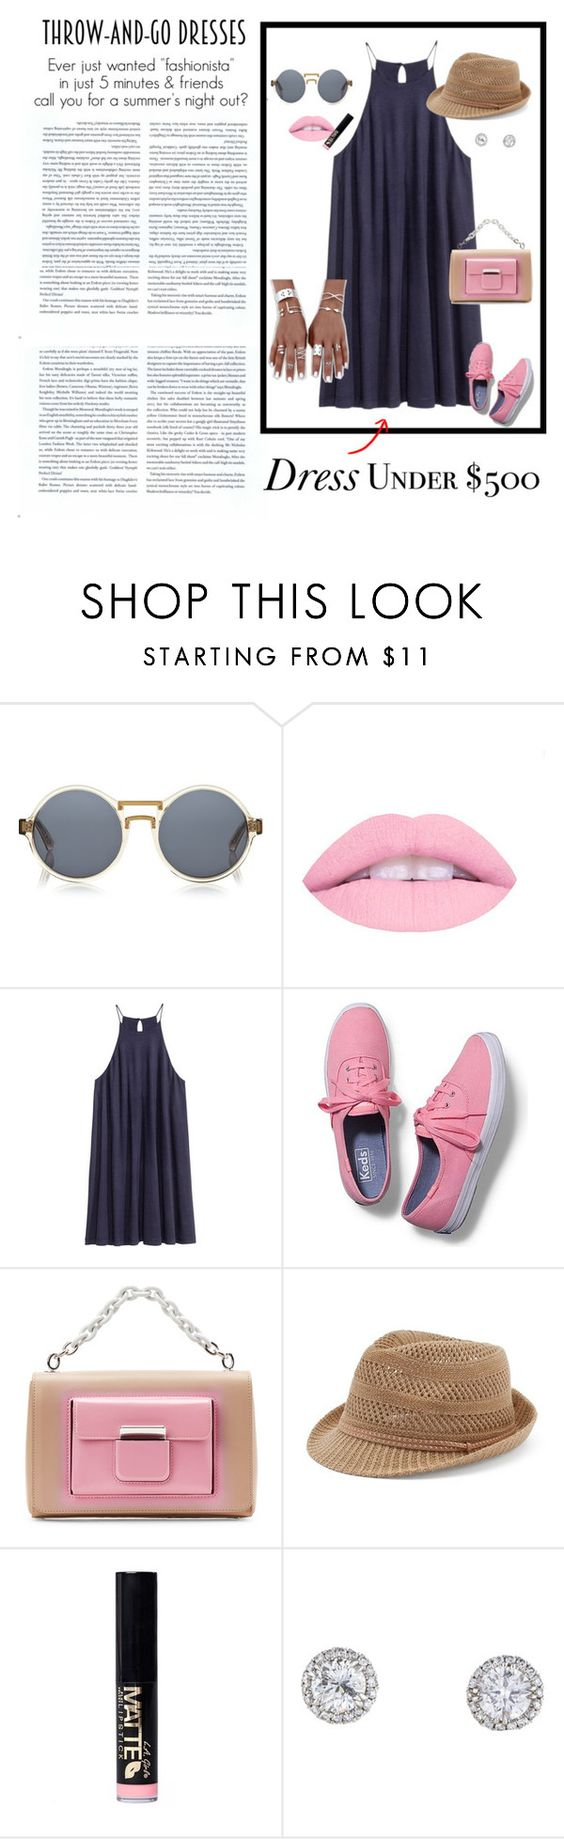 """""""Contest Entry: Throw and Go Dresses"""" by kedalove ❤ liked on Polyvore featuring Finlay & Co., H&M, Keds, Balenciaga and Candie's"""